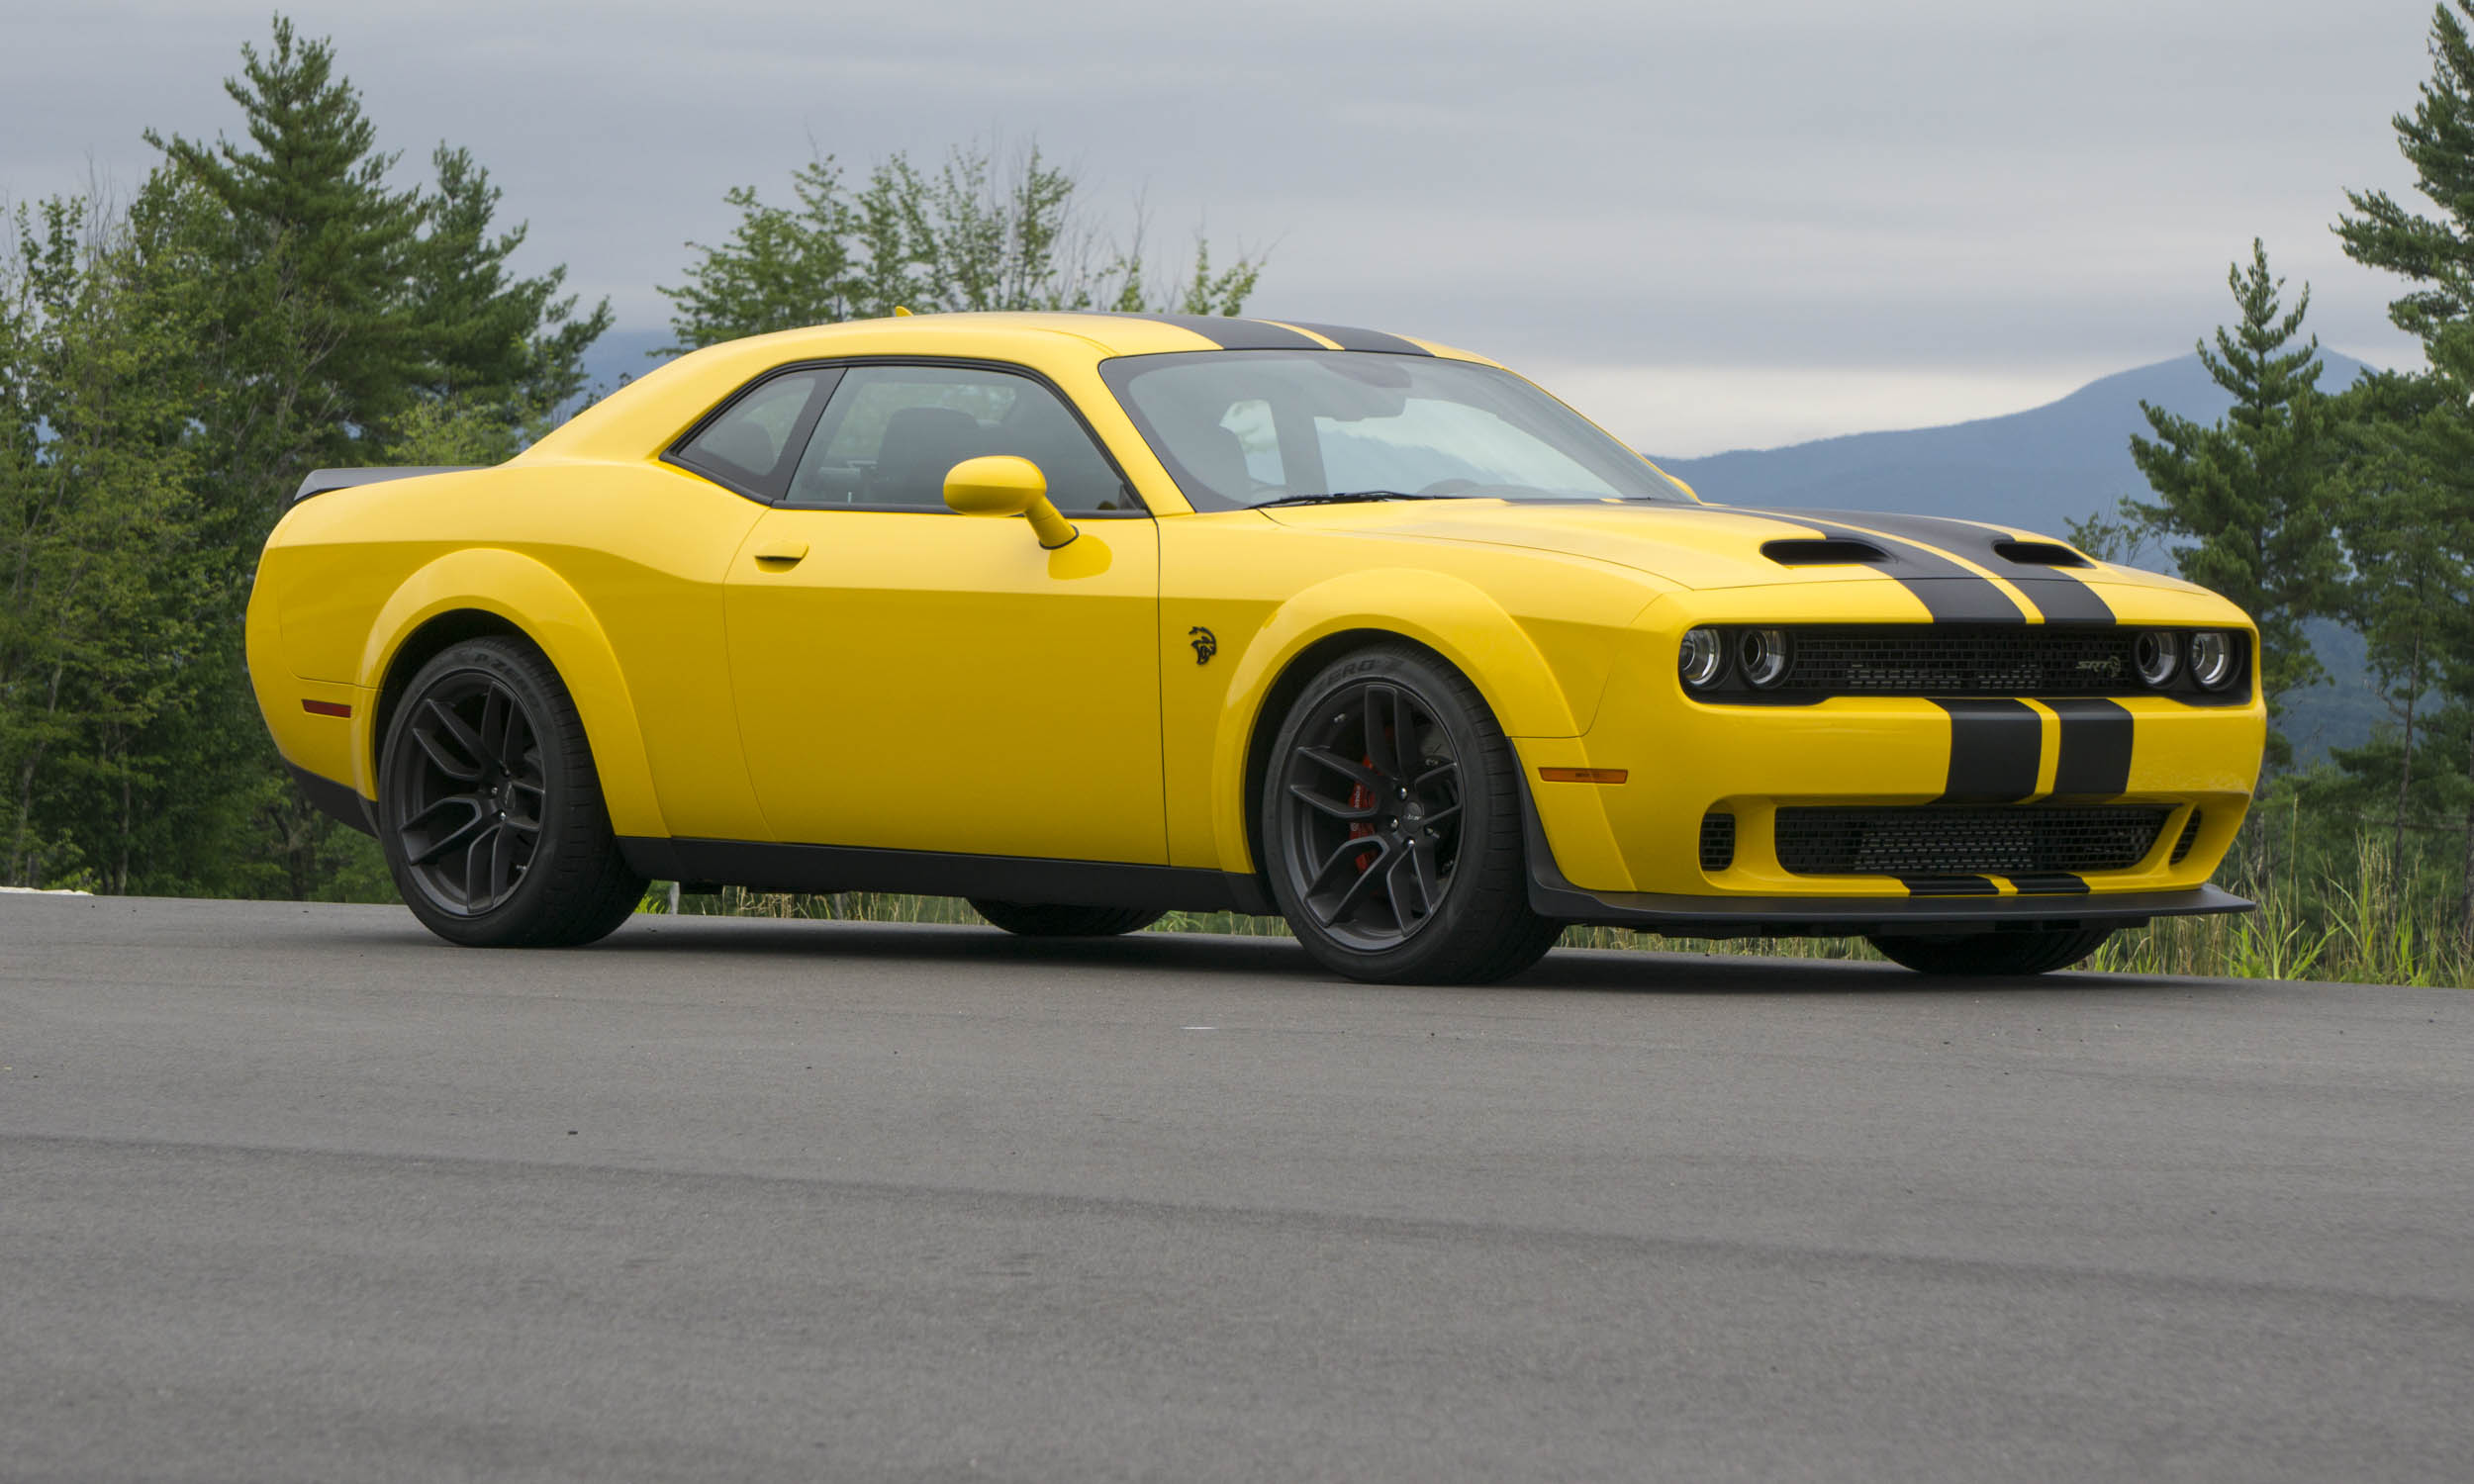 2019 Dodge Challenger Hellcat Redeye: First Drive Review - » AutoNXT